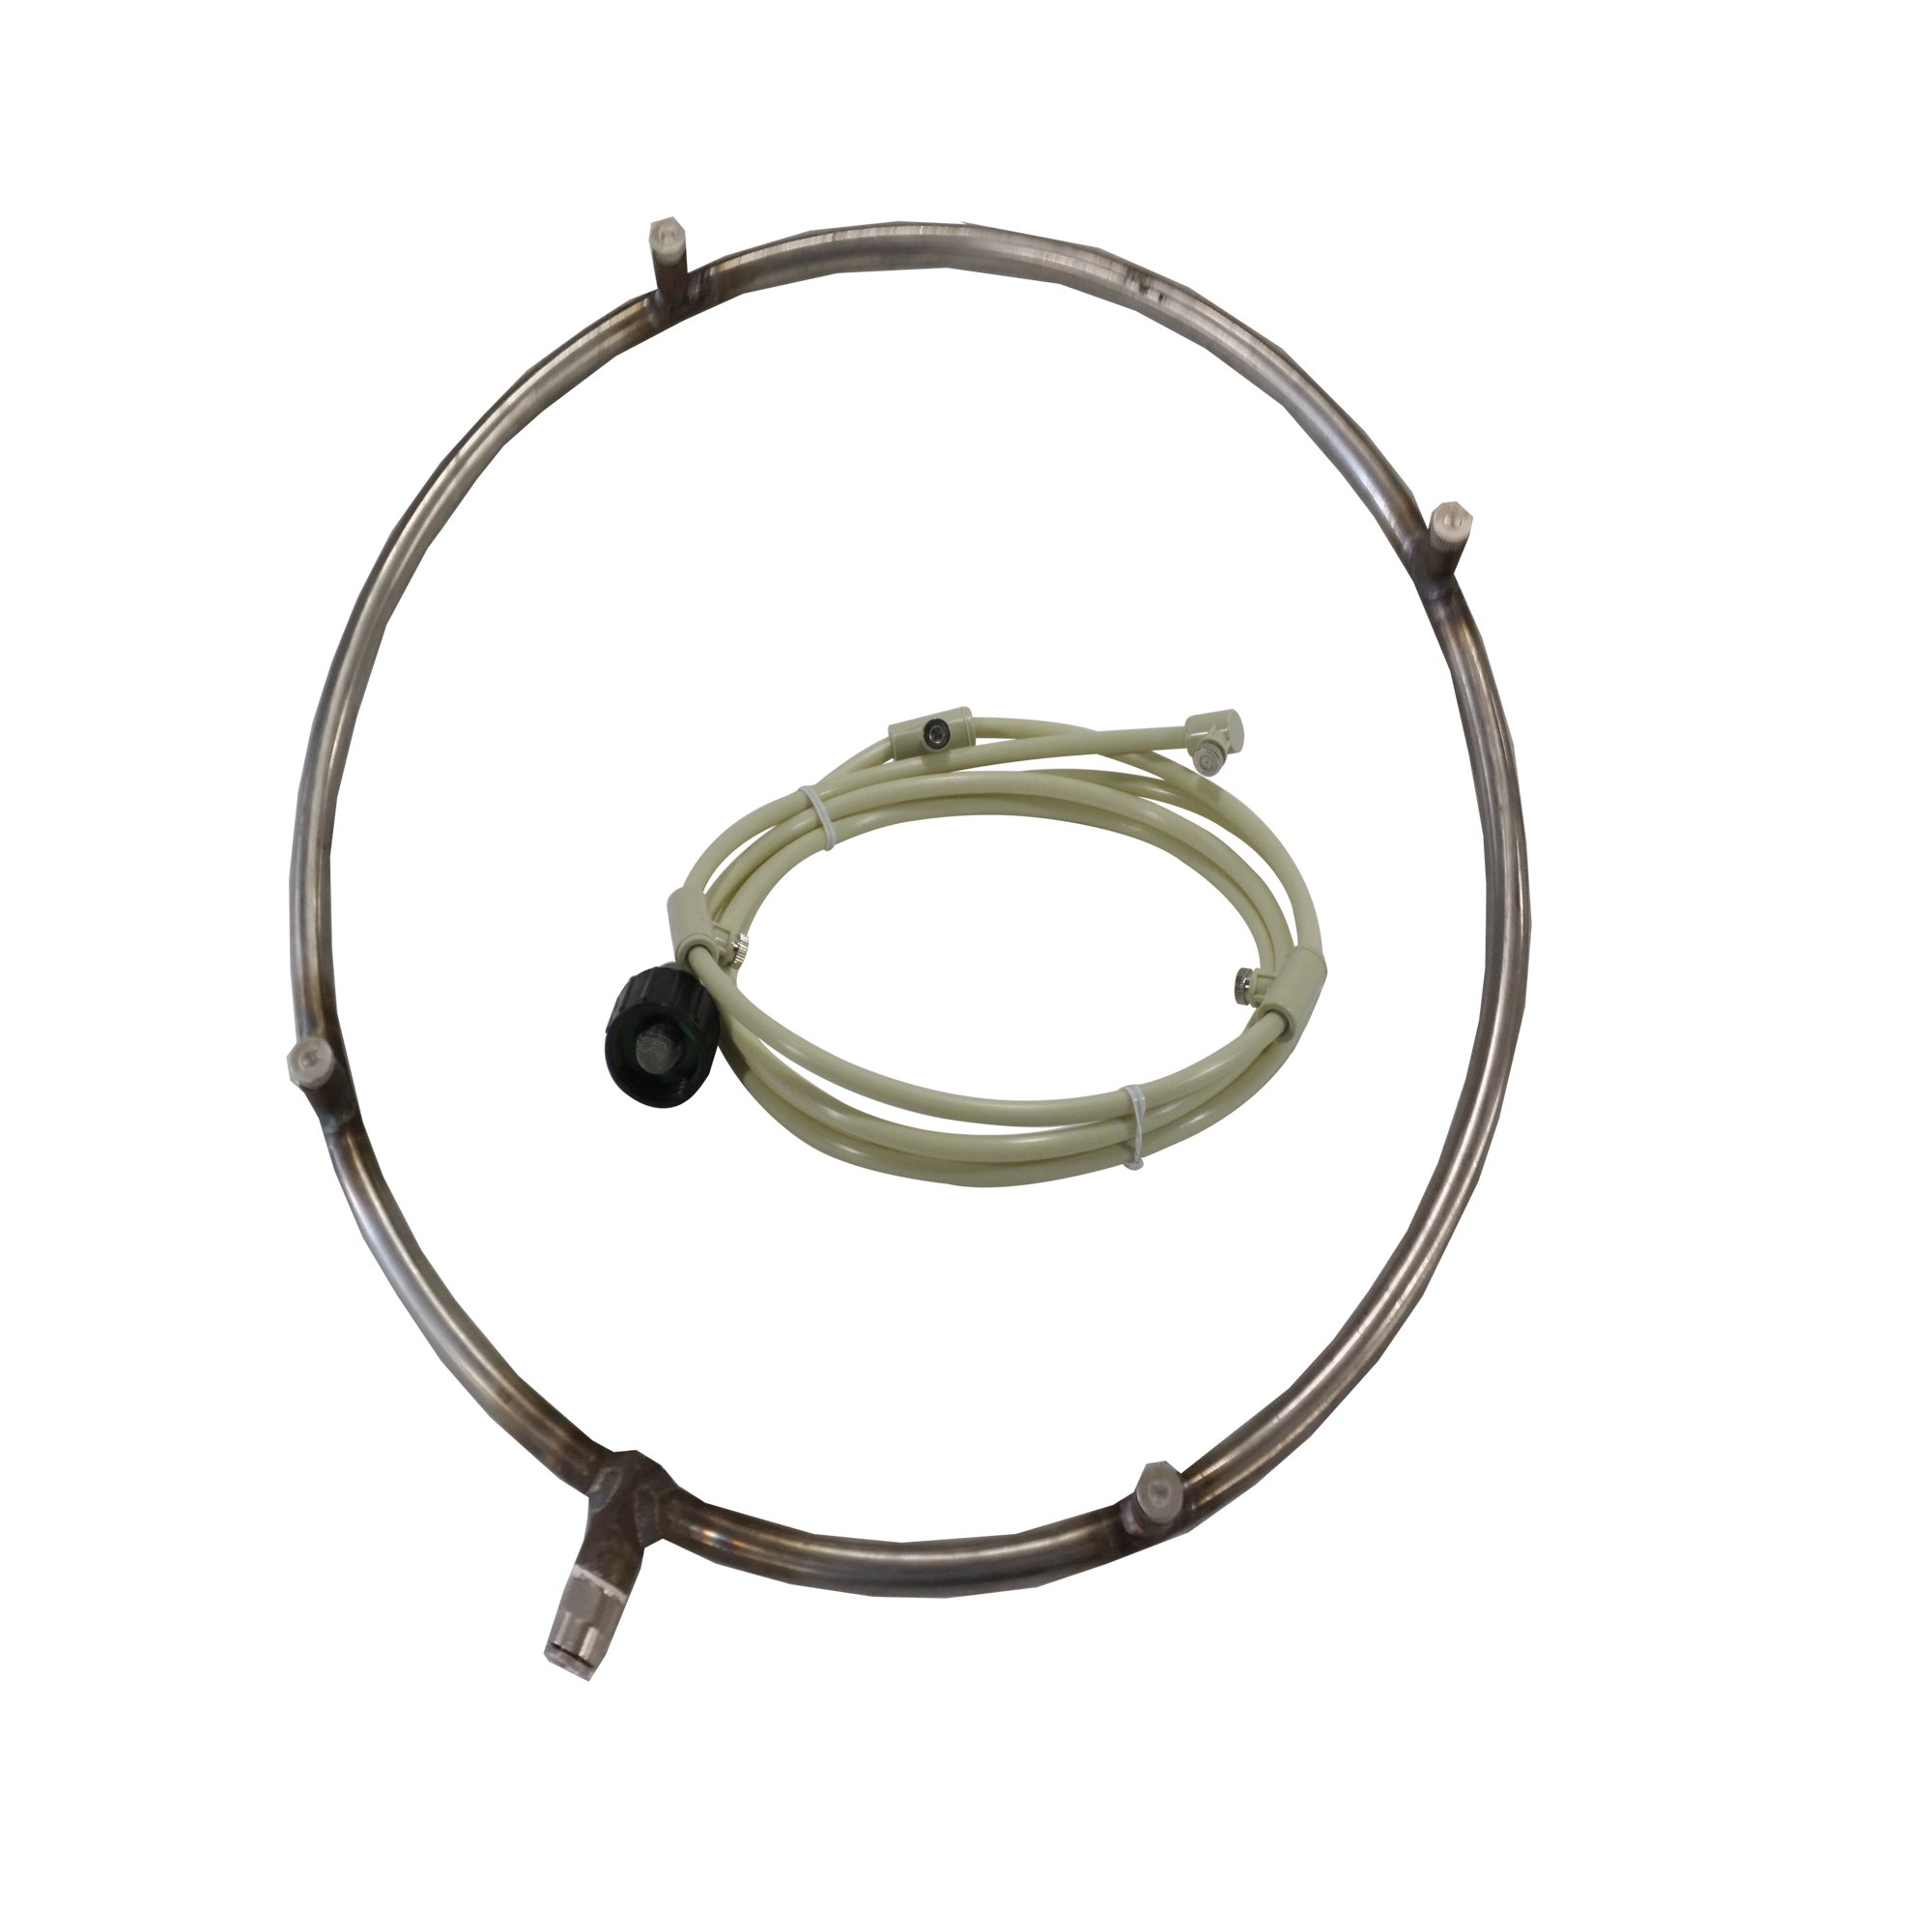 Misting Fan Ring - Stainless Steel (12'' Dia 4 Nozzles) by mistcooling